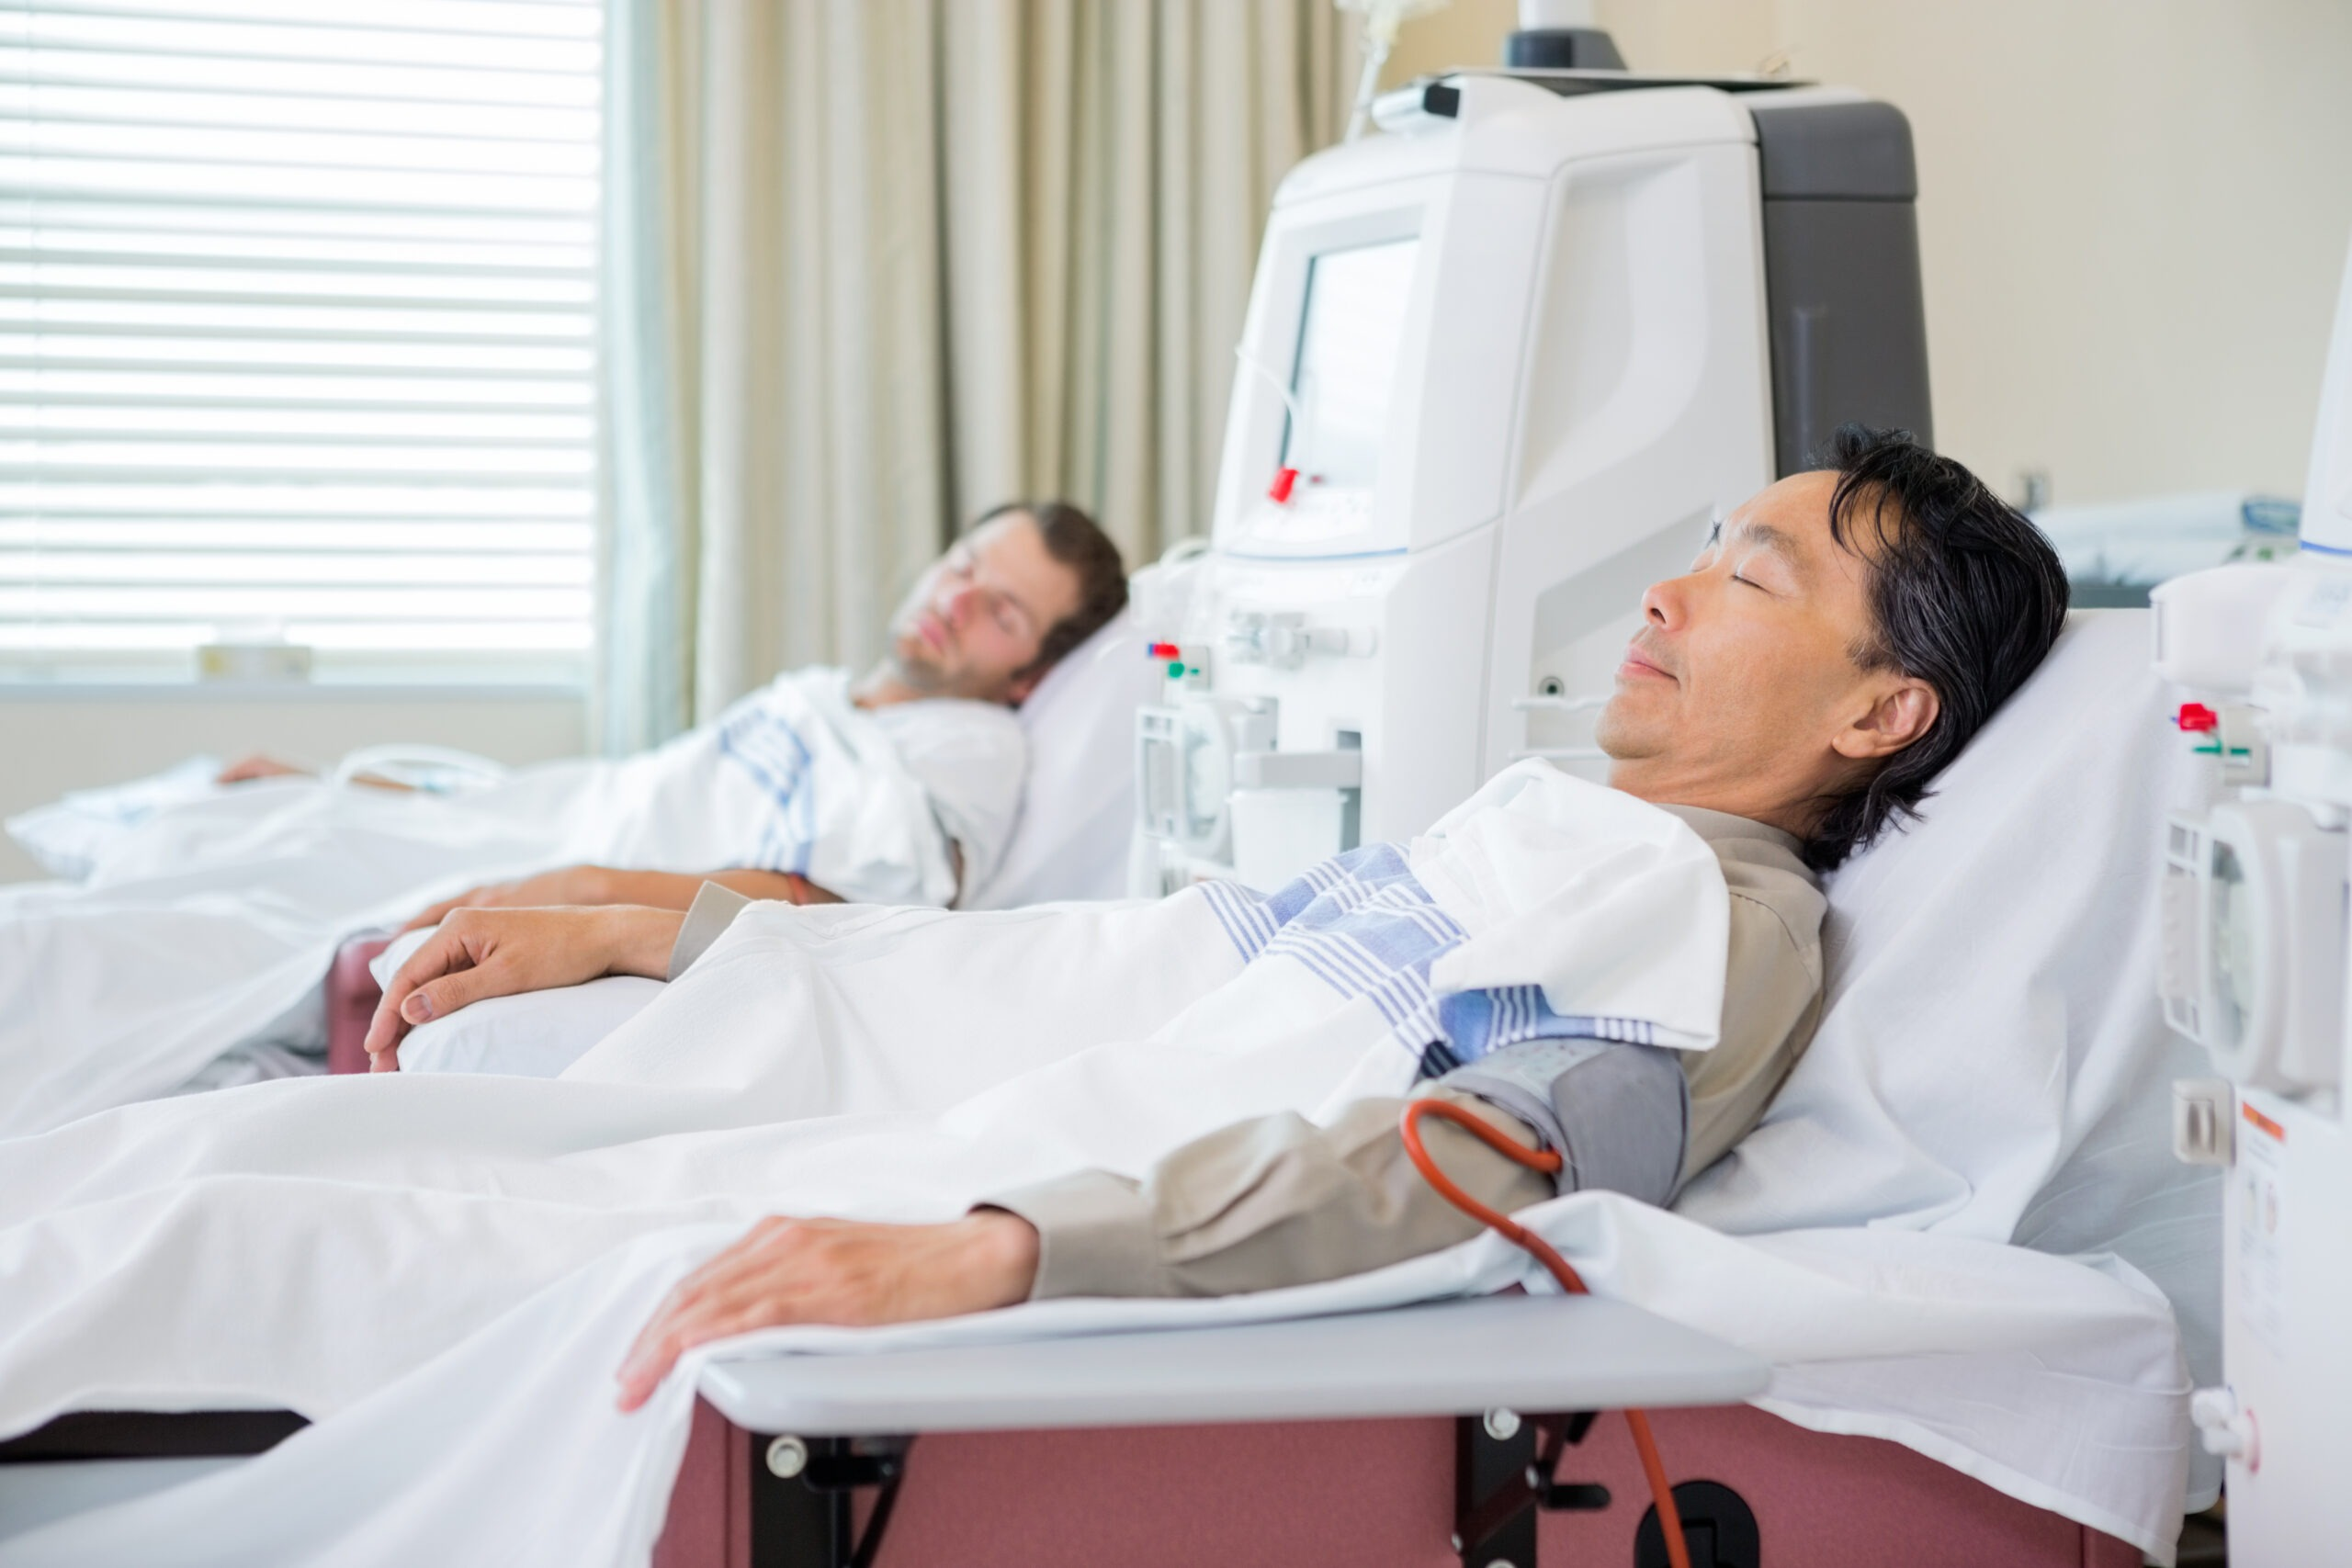 Male patients receiving renal dialysis in a dialysis unit